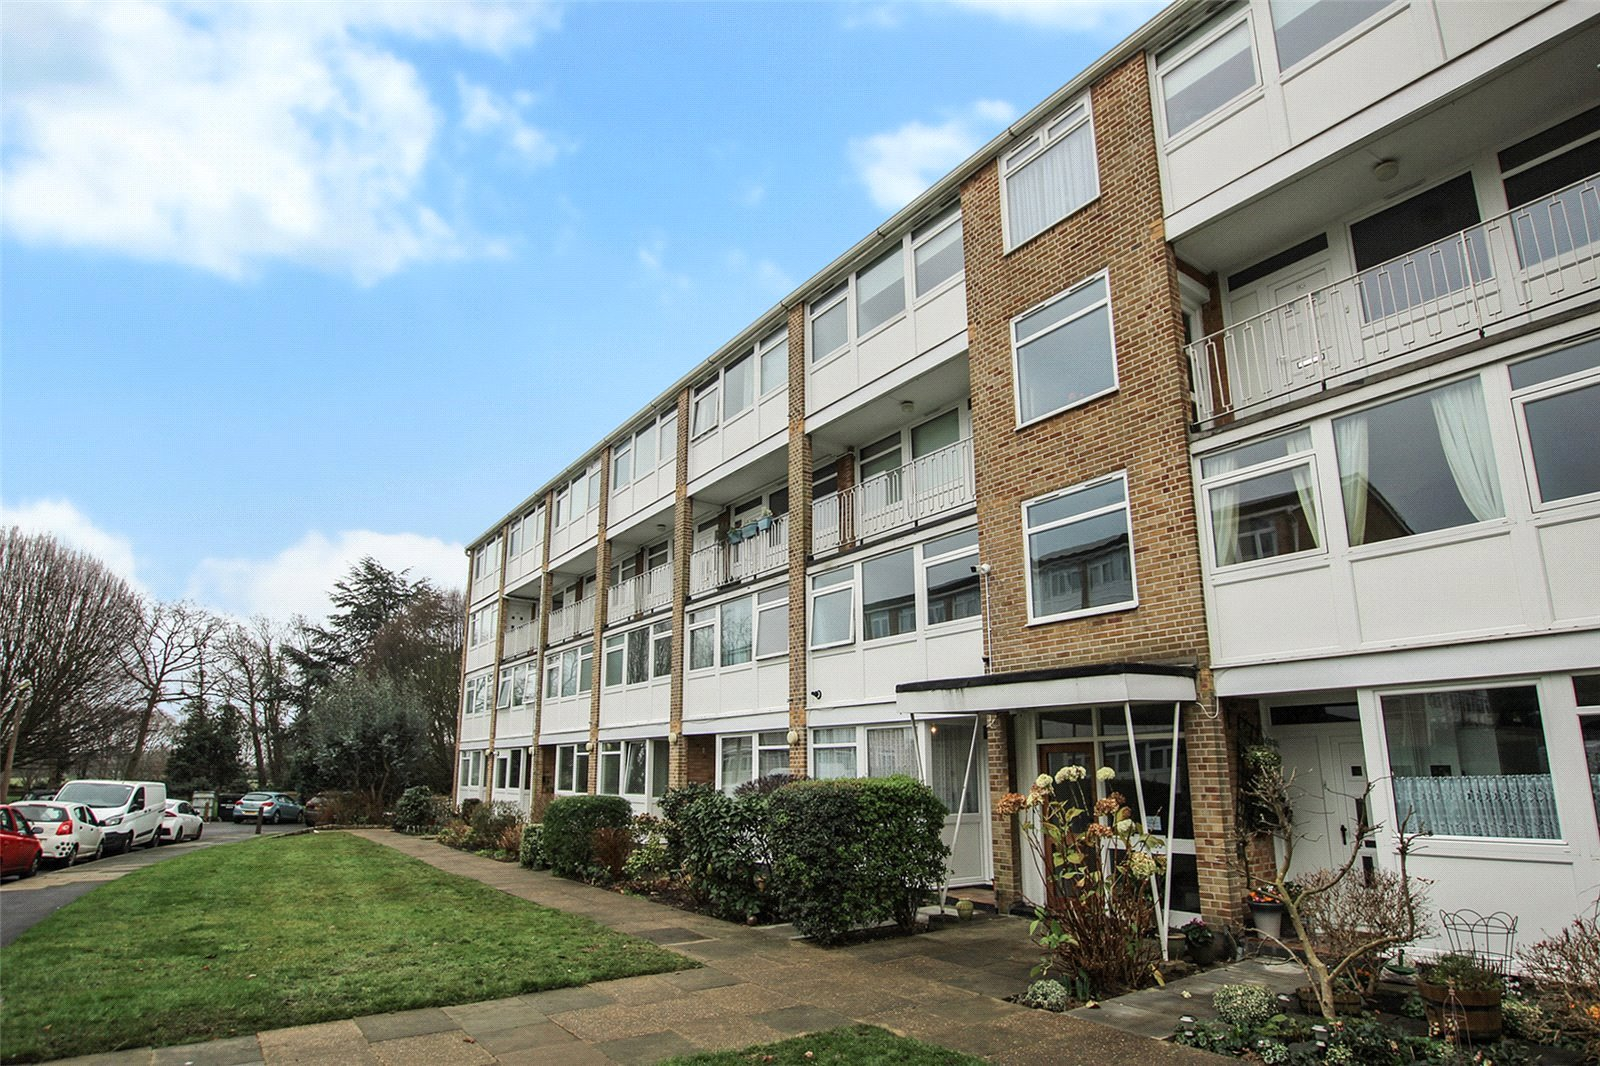 Tarnwood Park, Eltham, London, SE9